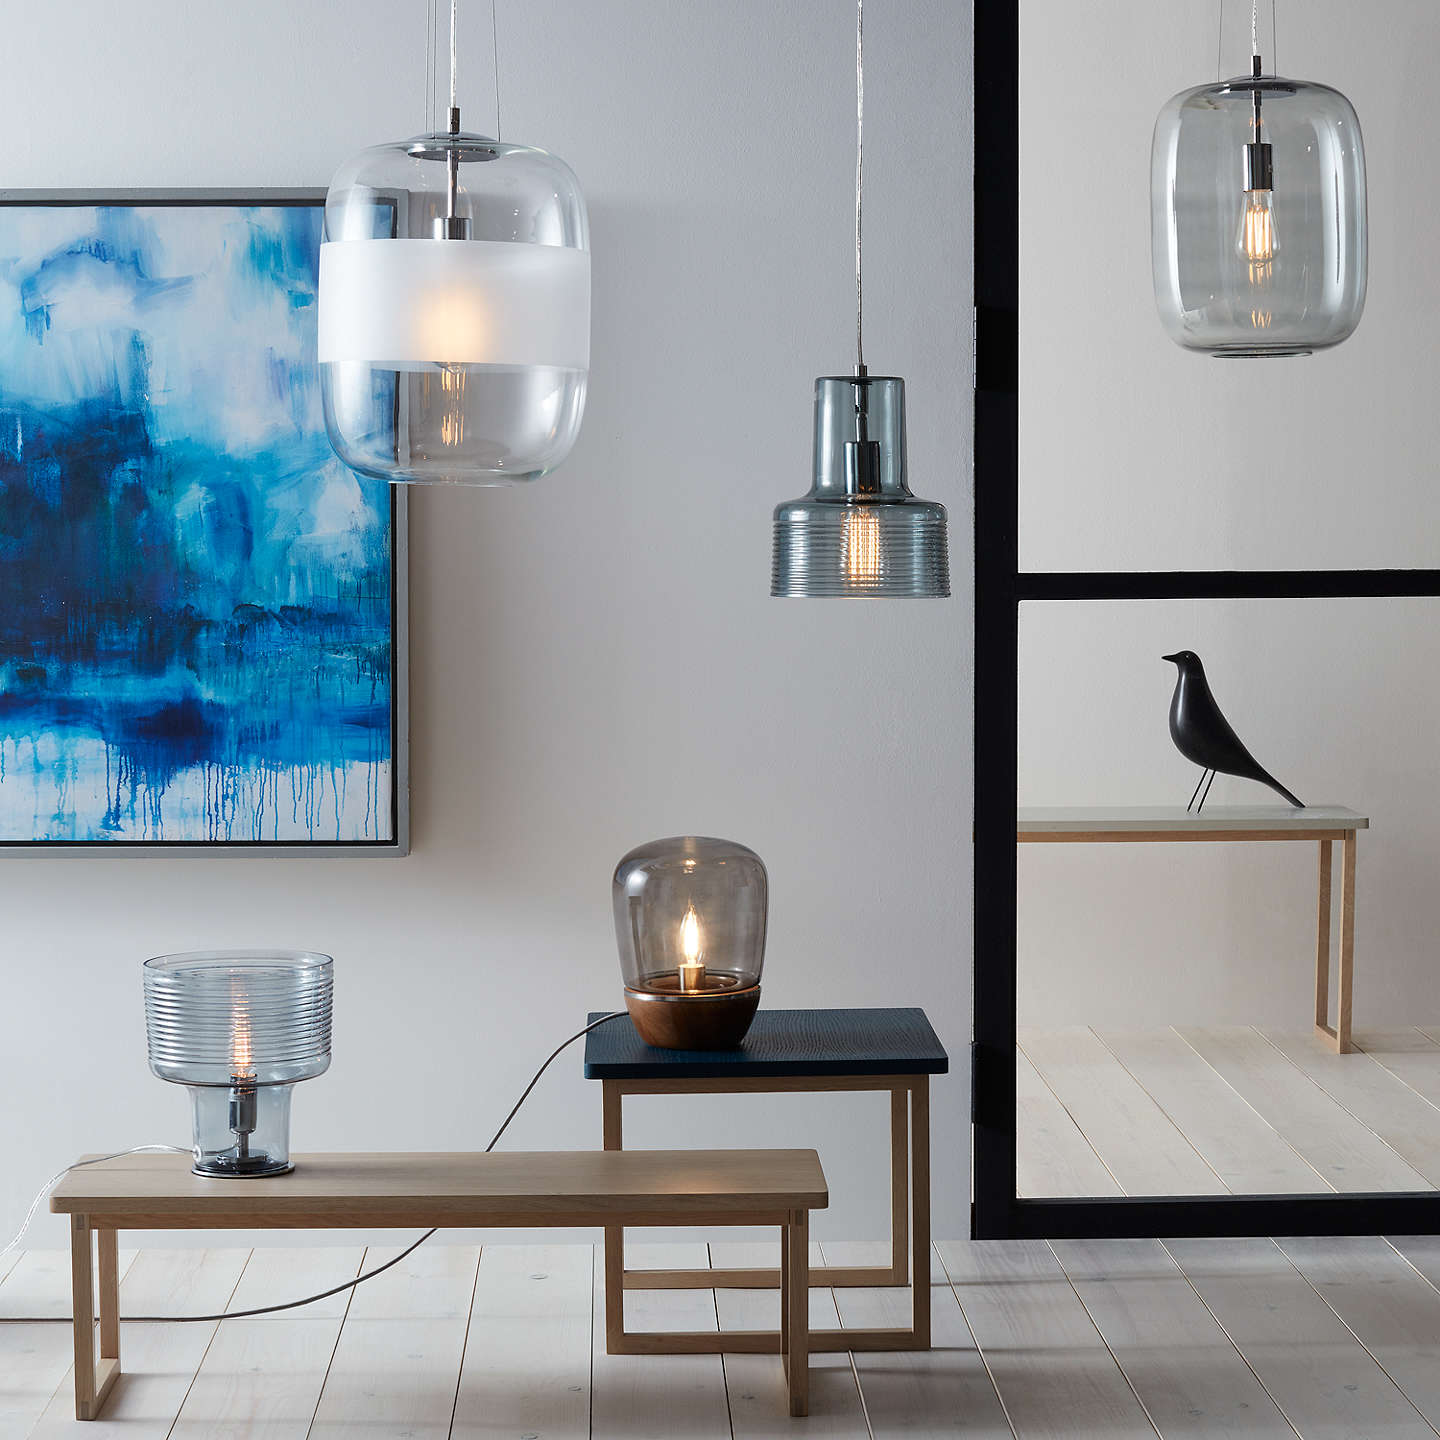 BuyJohn Lewis Hanna Smoky Glass Table Lamp Walnut Stain Online At Johnlewis